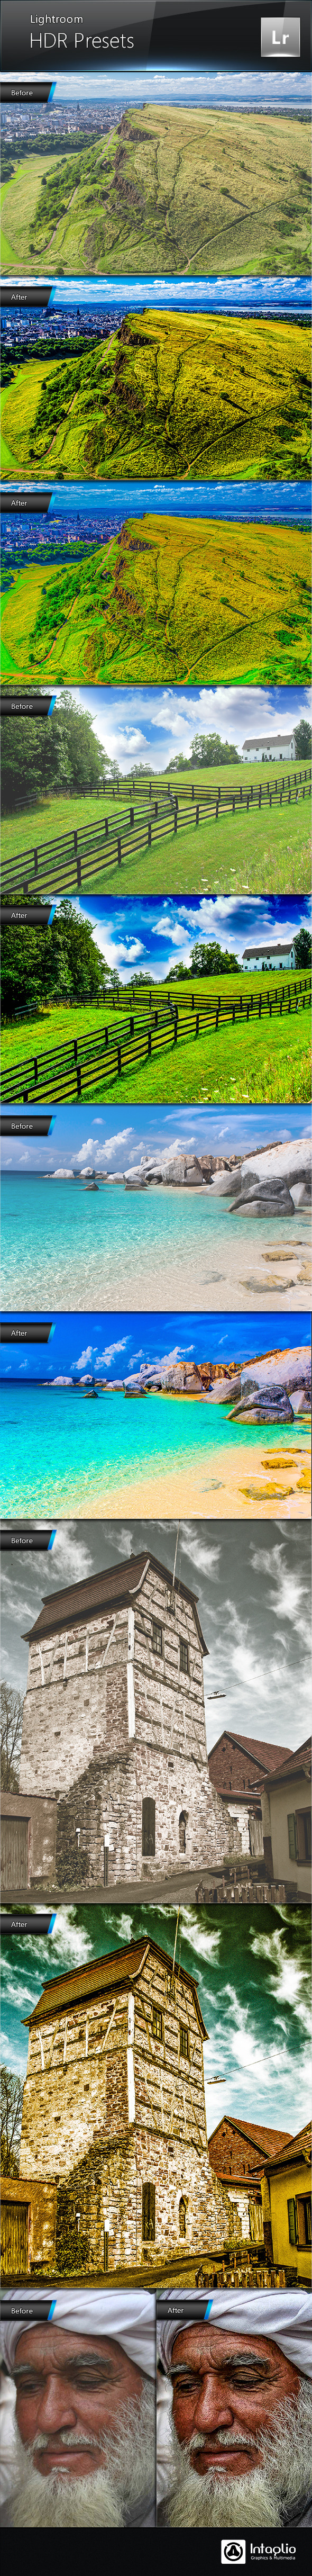 HDR Presets for Lightroom - HDR Lightroom Presets